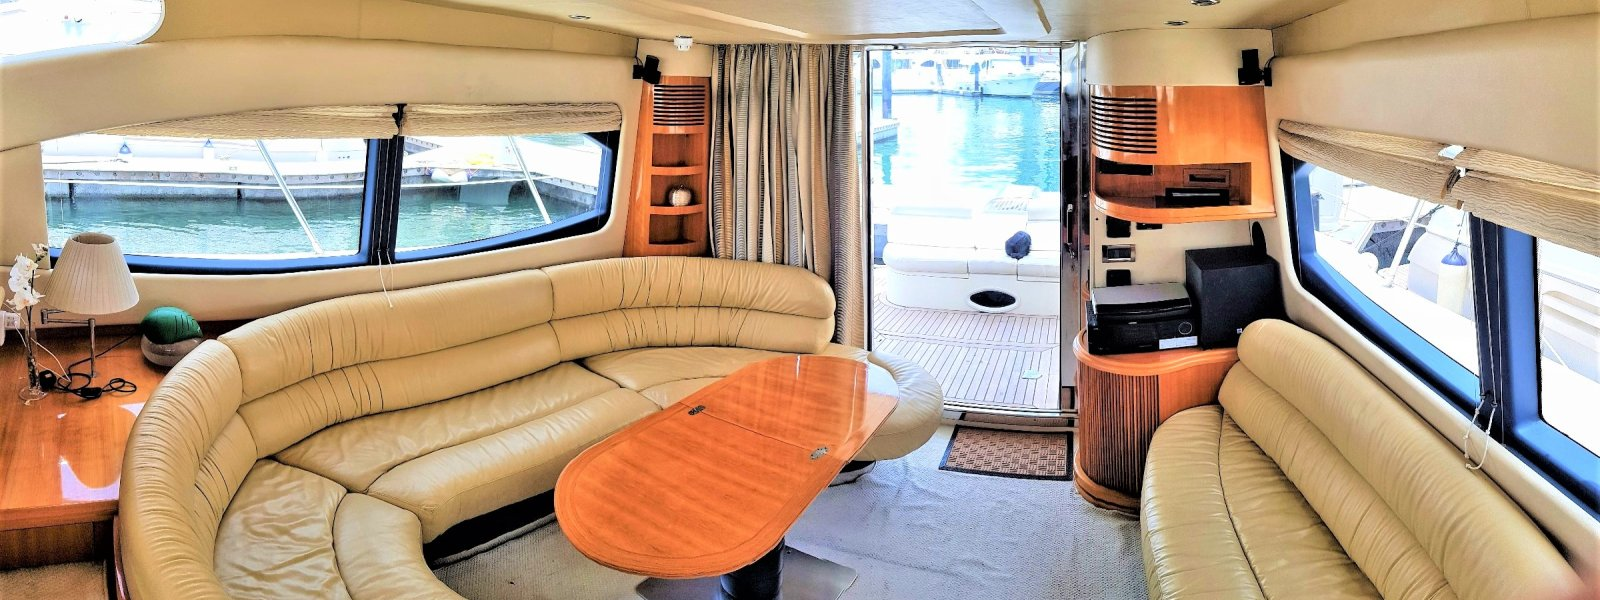 Cozmo 50 Seamaster Yacht lounge for family.